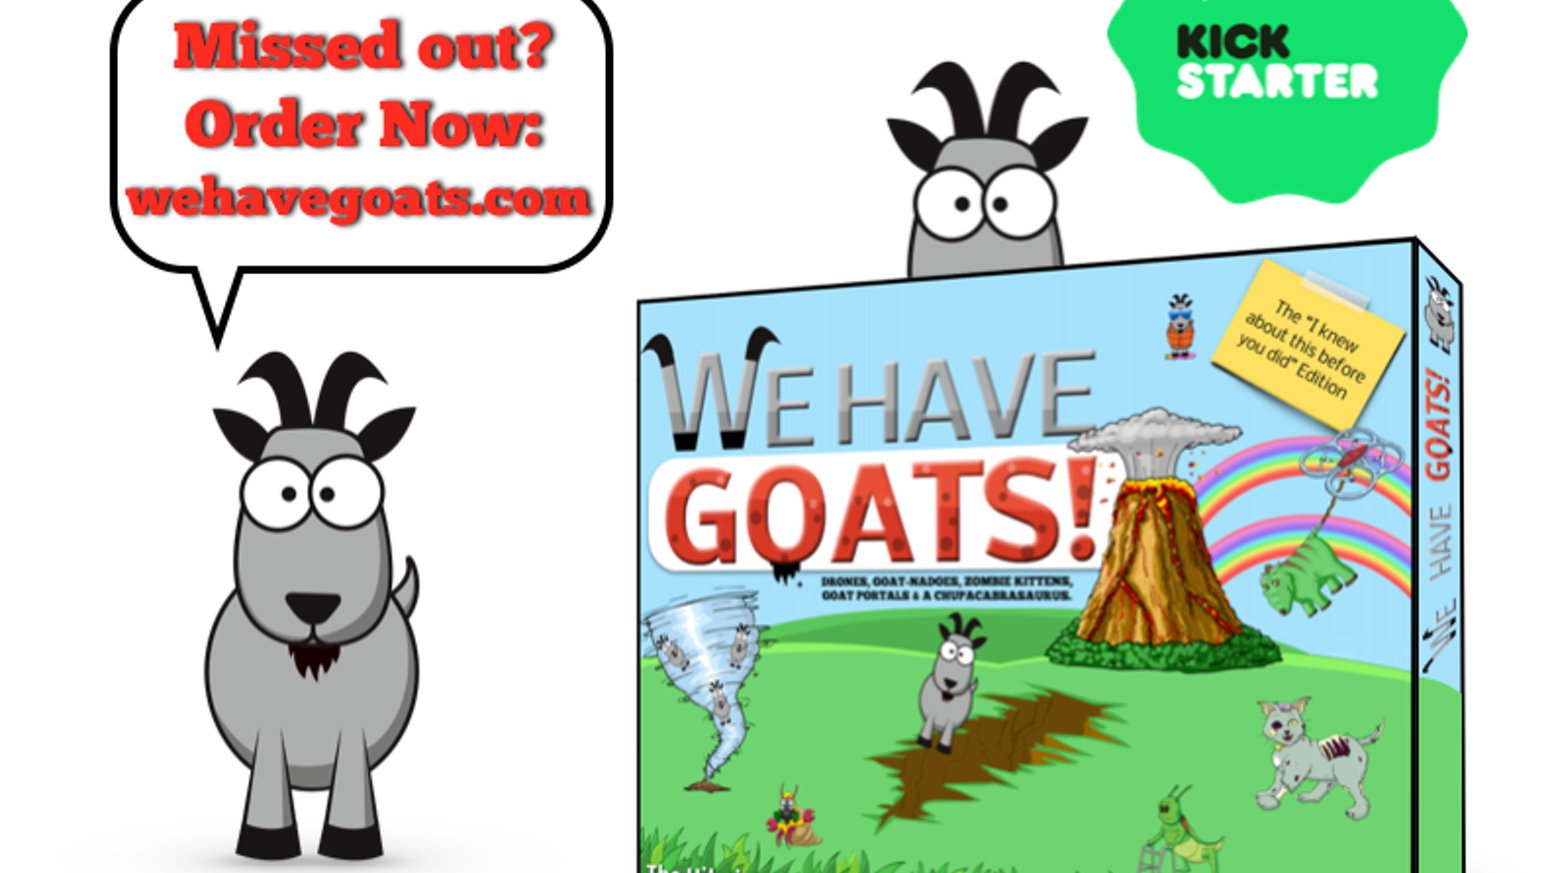 Order now: www.wehavegoats.com  a Tile-Laying, Goat-Racing Game with Zombie Kitty, Portals & a Chupacabrasaurus.